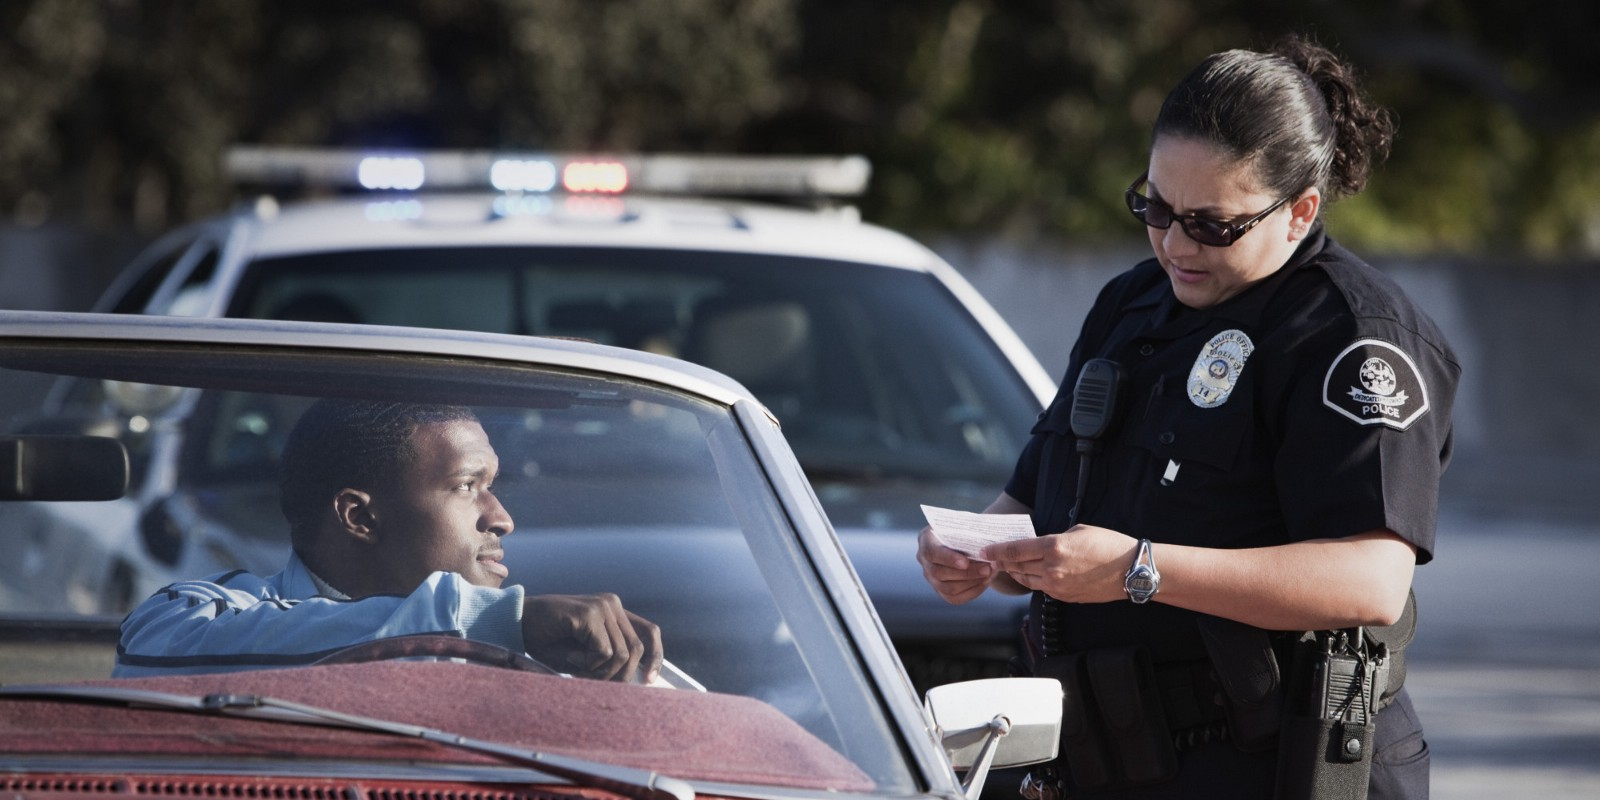 Pulled Over By Cops : Pulled over by the police what now stories